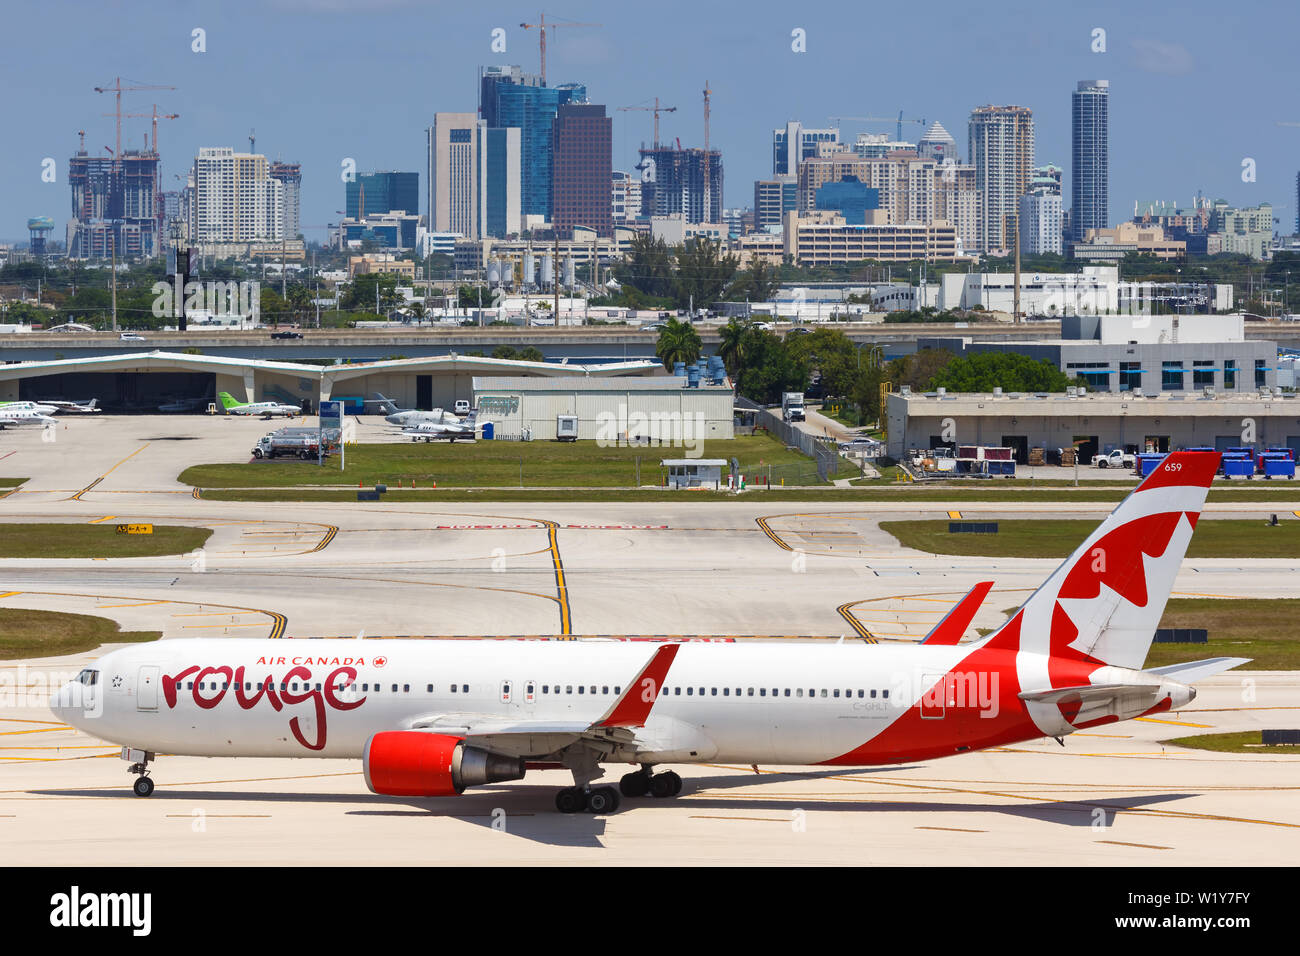 Fort Lauderdale, Florida – April 6, 2019: Air Canada Rouge Boeing 767-300ER airplane at Fort Lauderdale airport (FLL) in the United States. Stock Photo